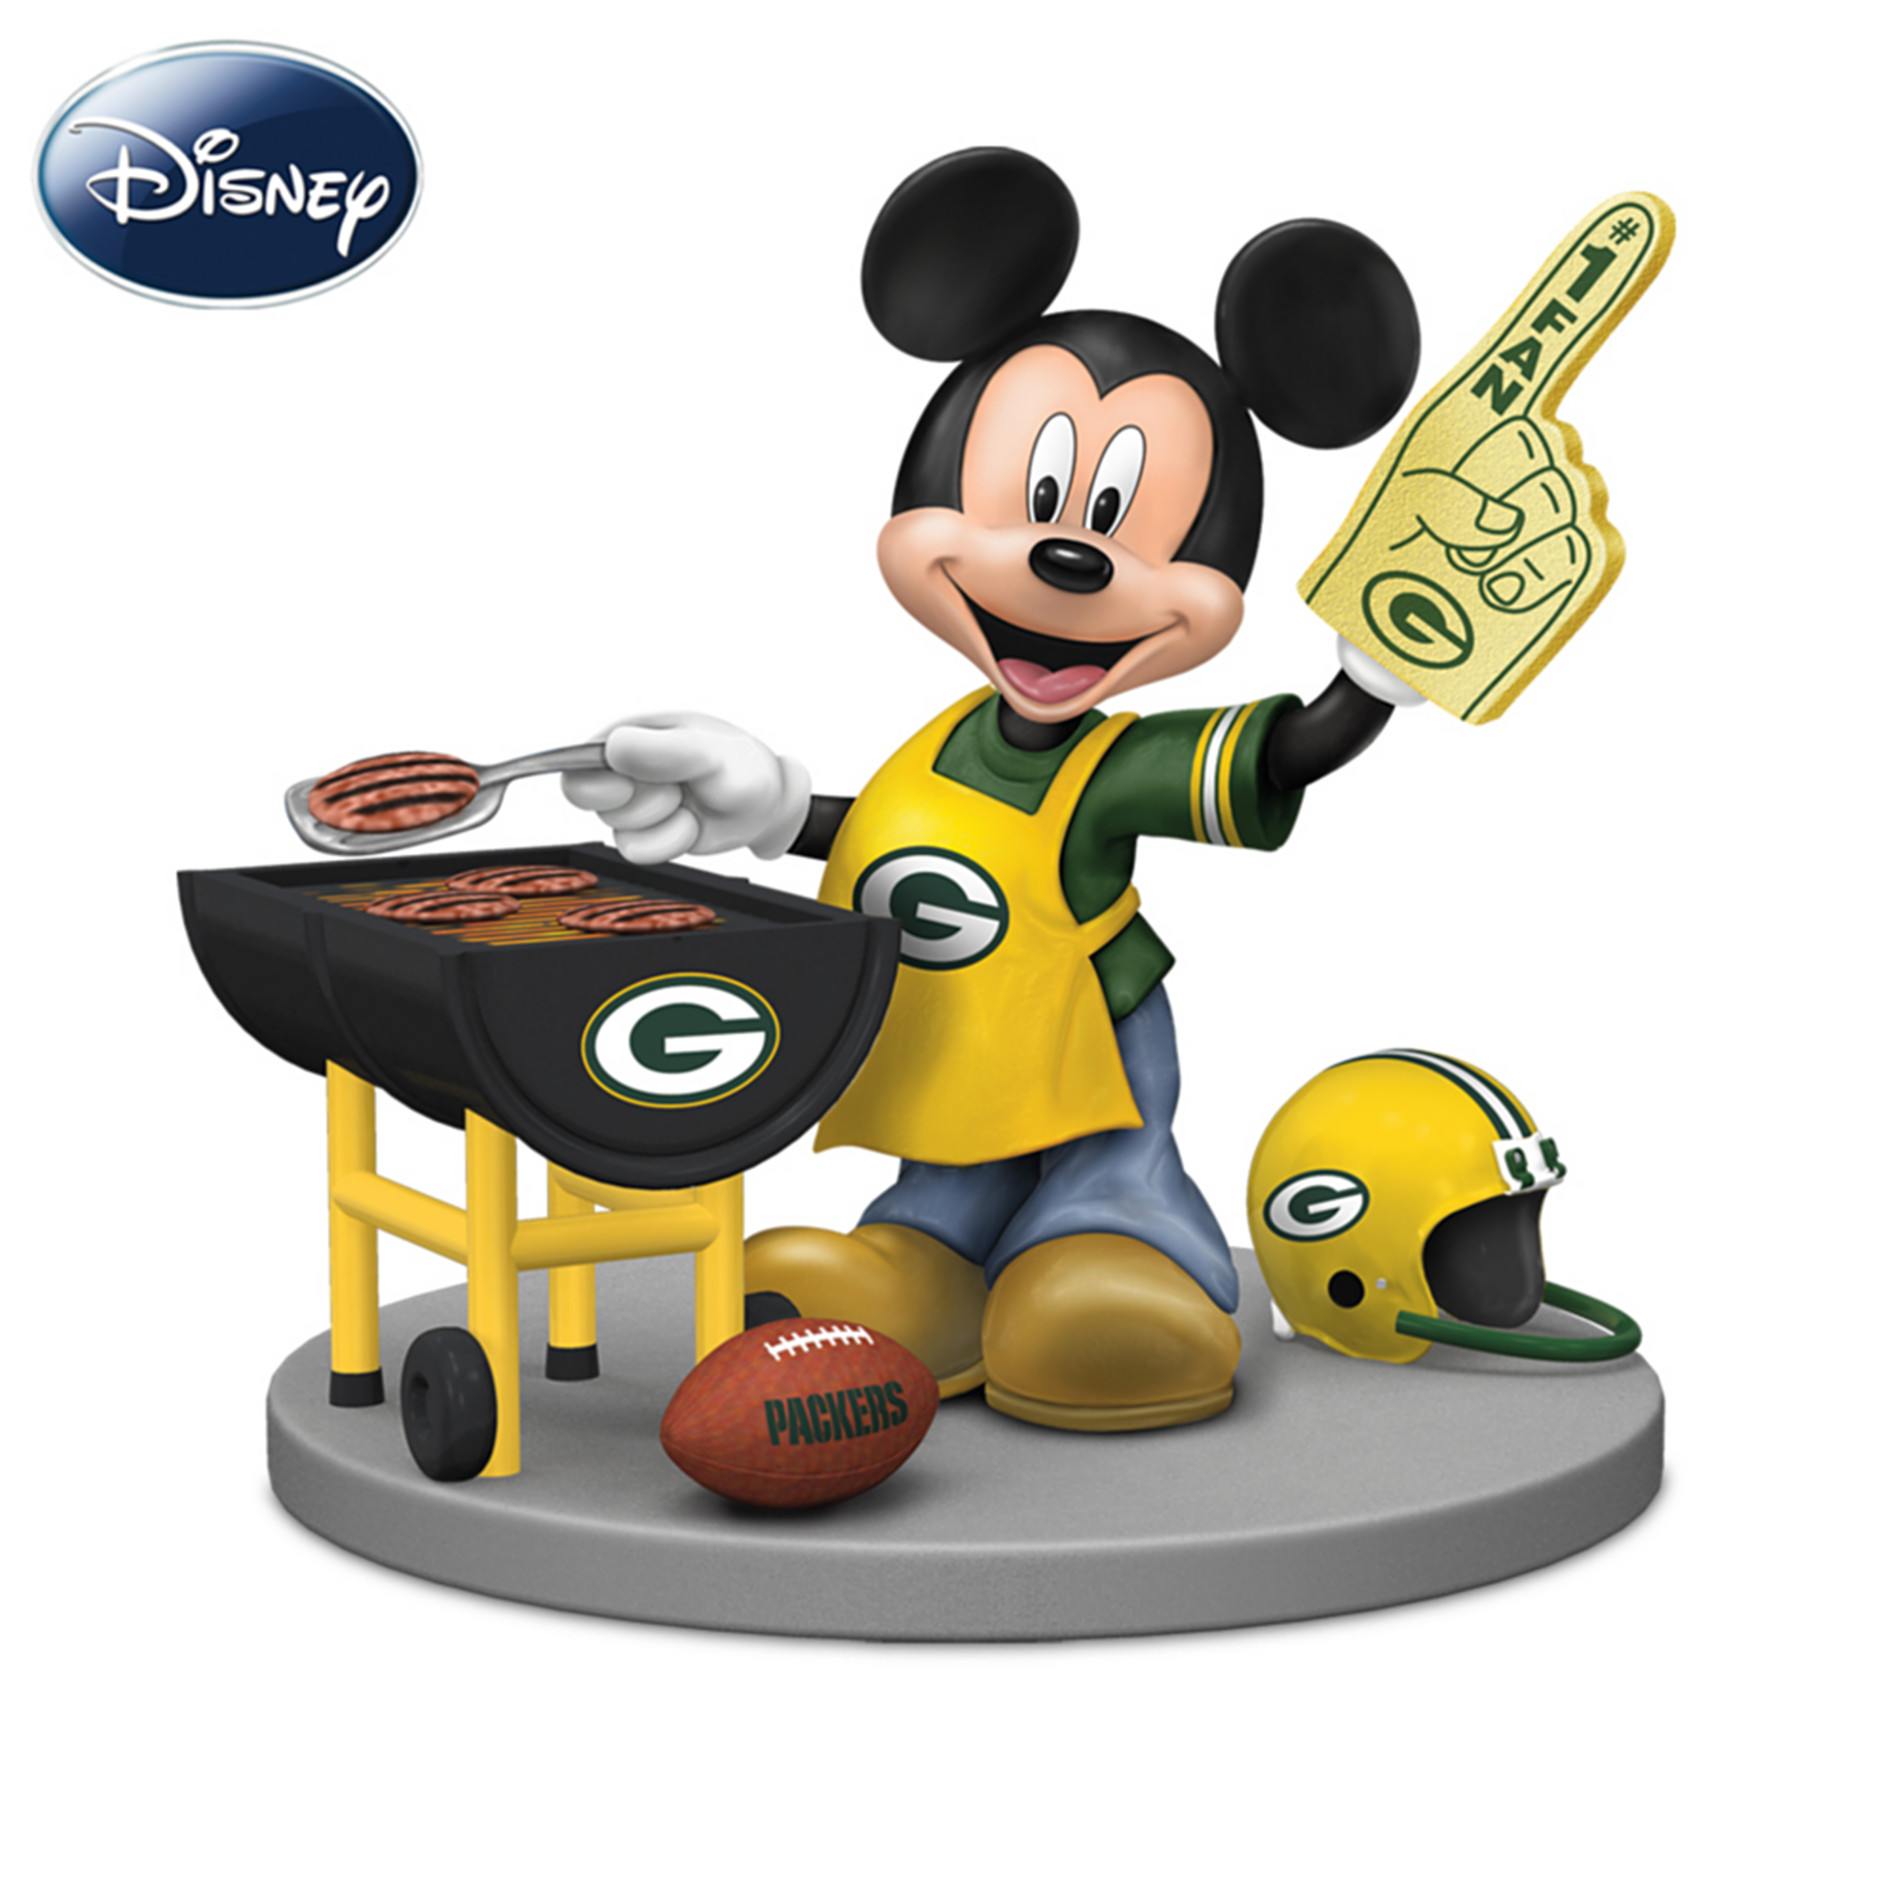 The Hamilton Collection Disney Green Bay Packers Tailgating Fun With Mickey & Friends Figurine Collection at Sears.com